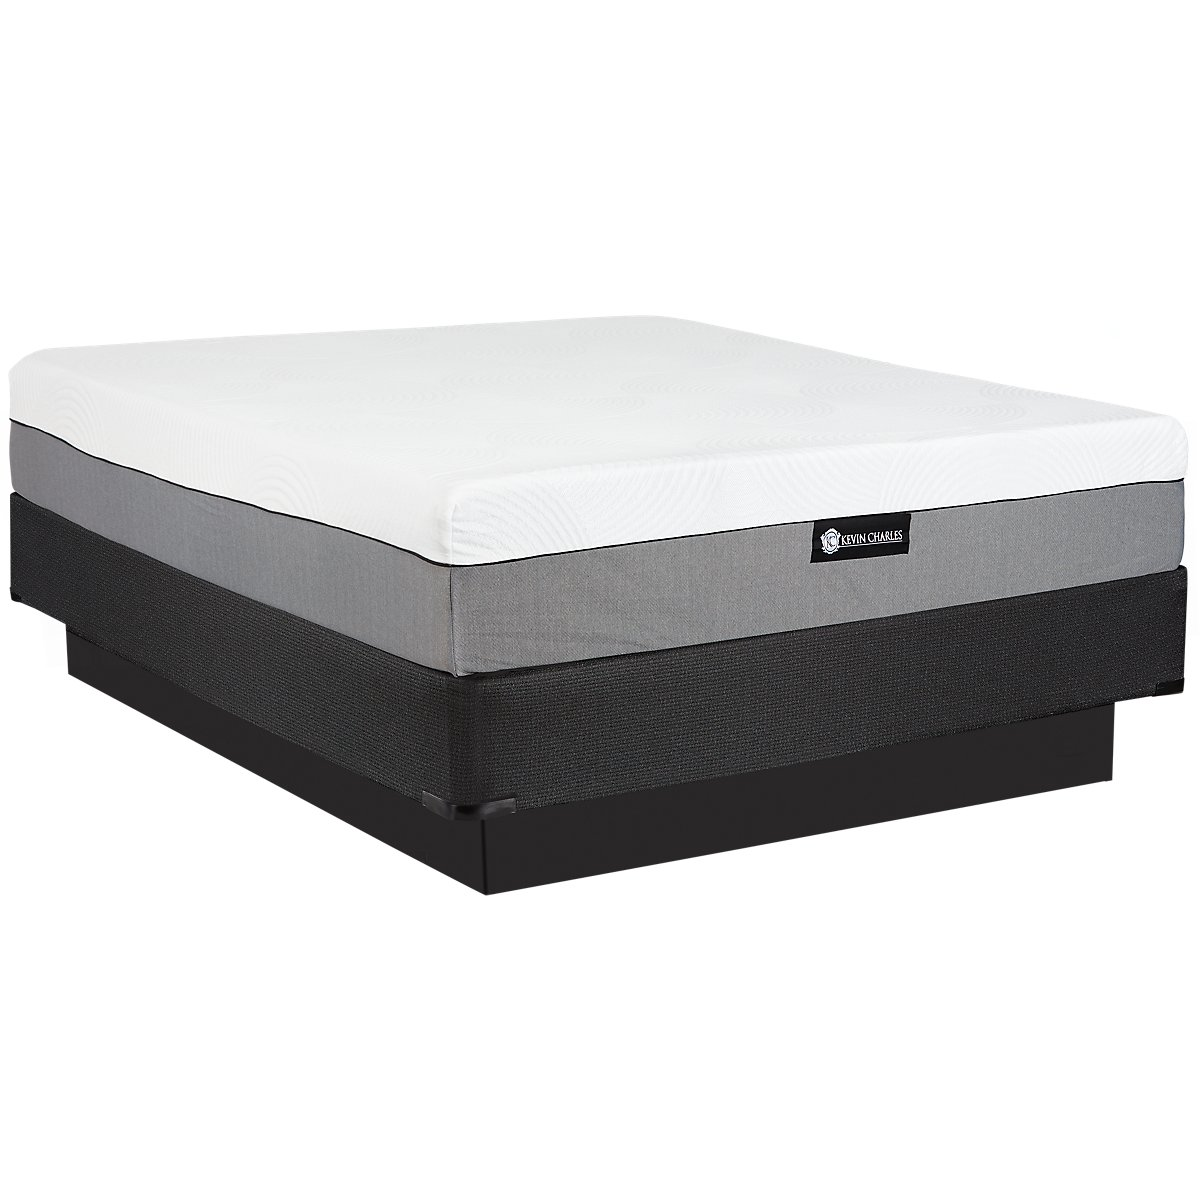 City furniture bliss plush memory foam mattress set Memory foam mattress set